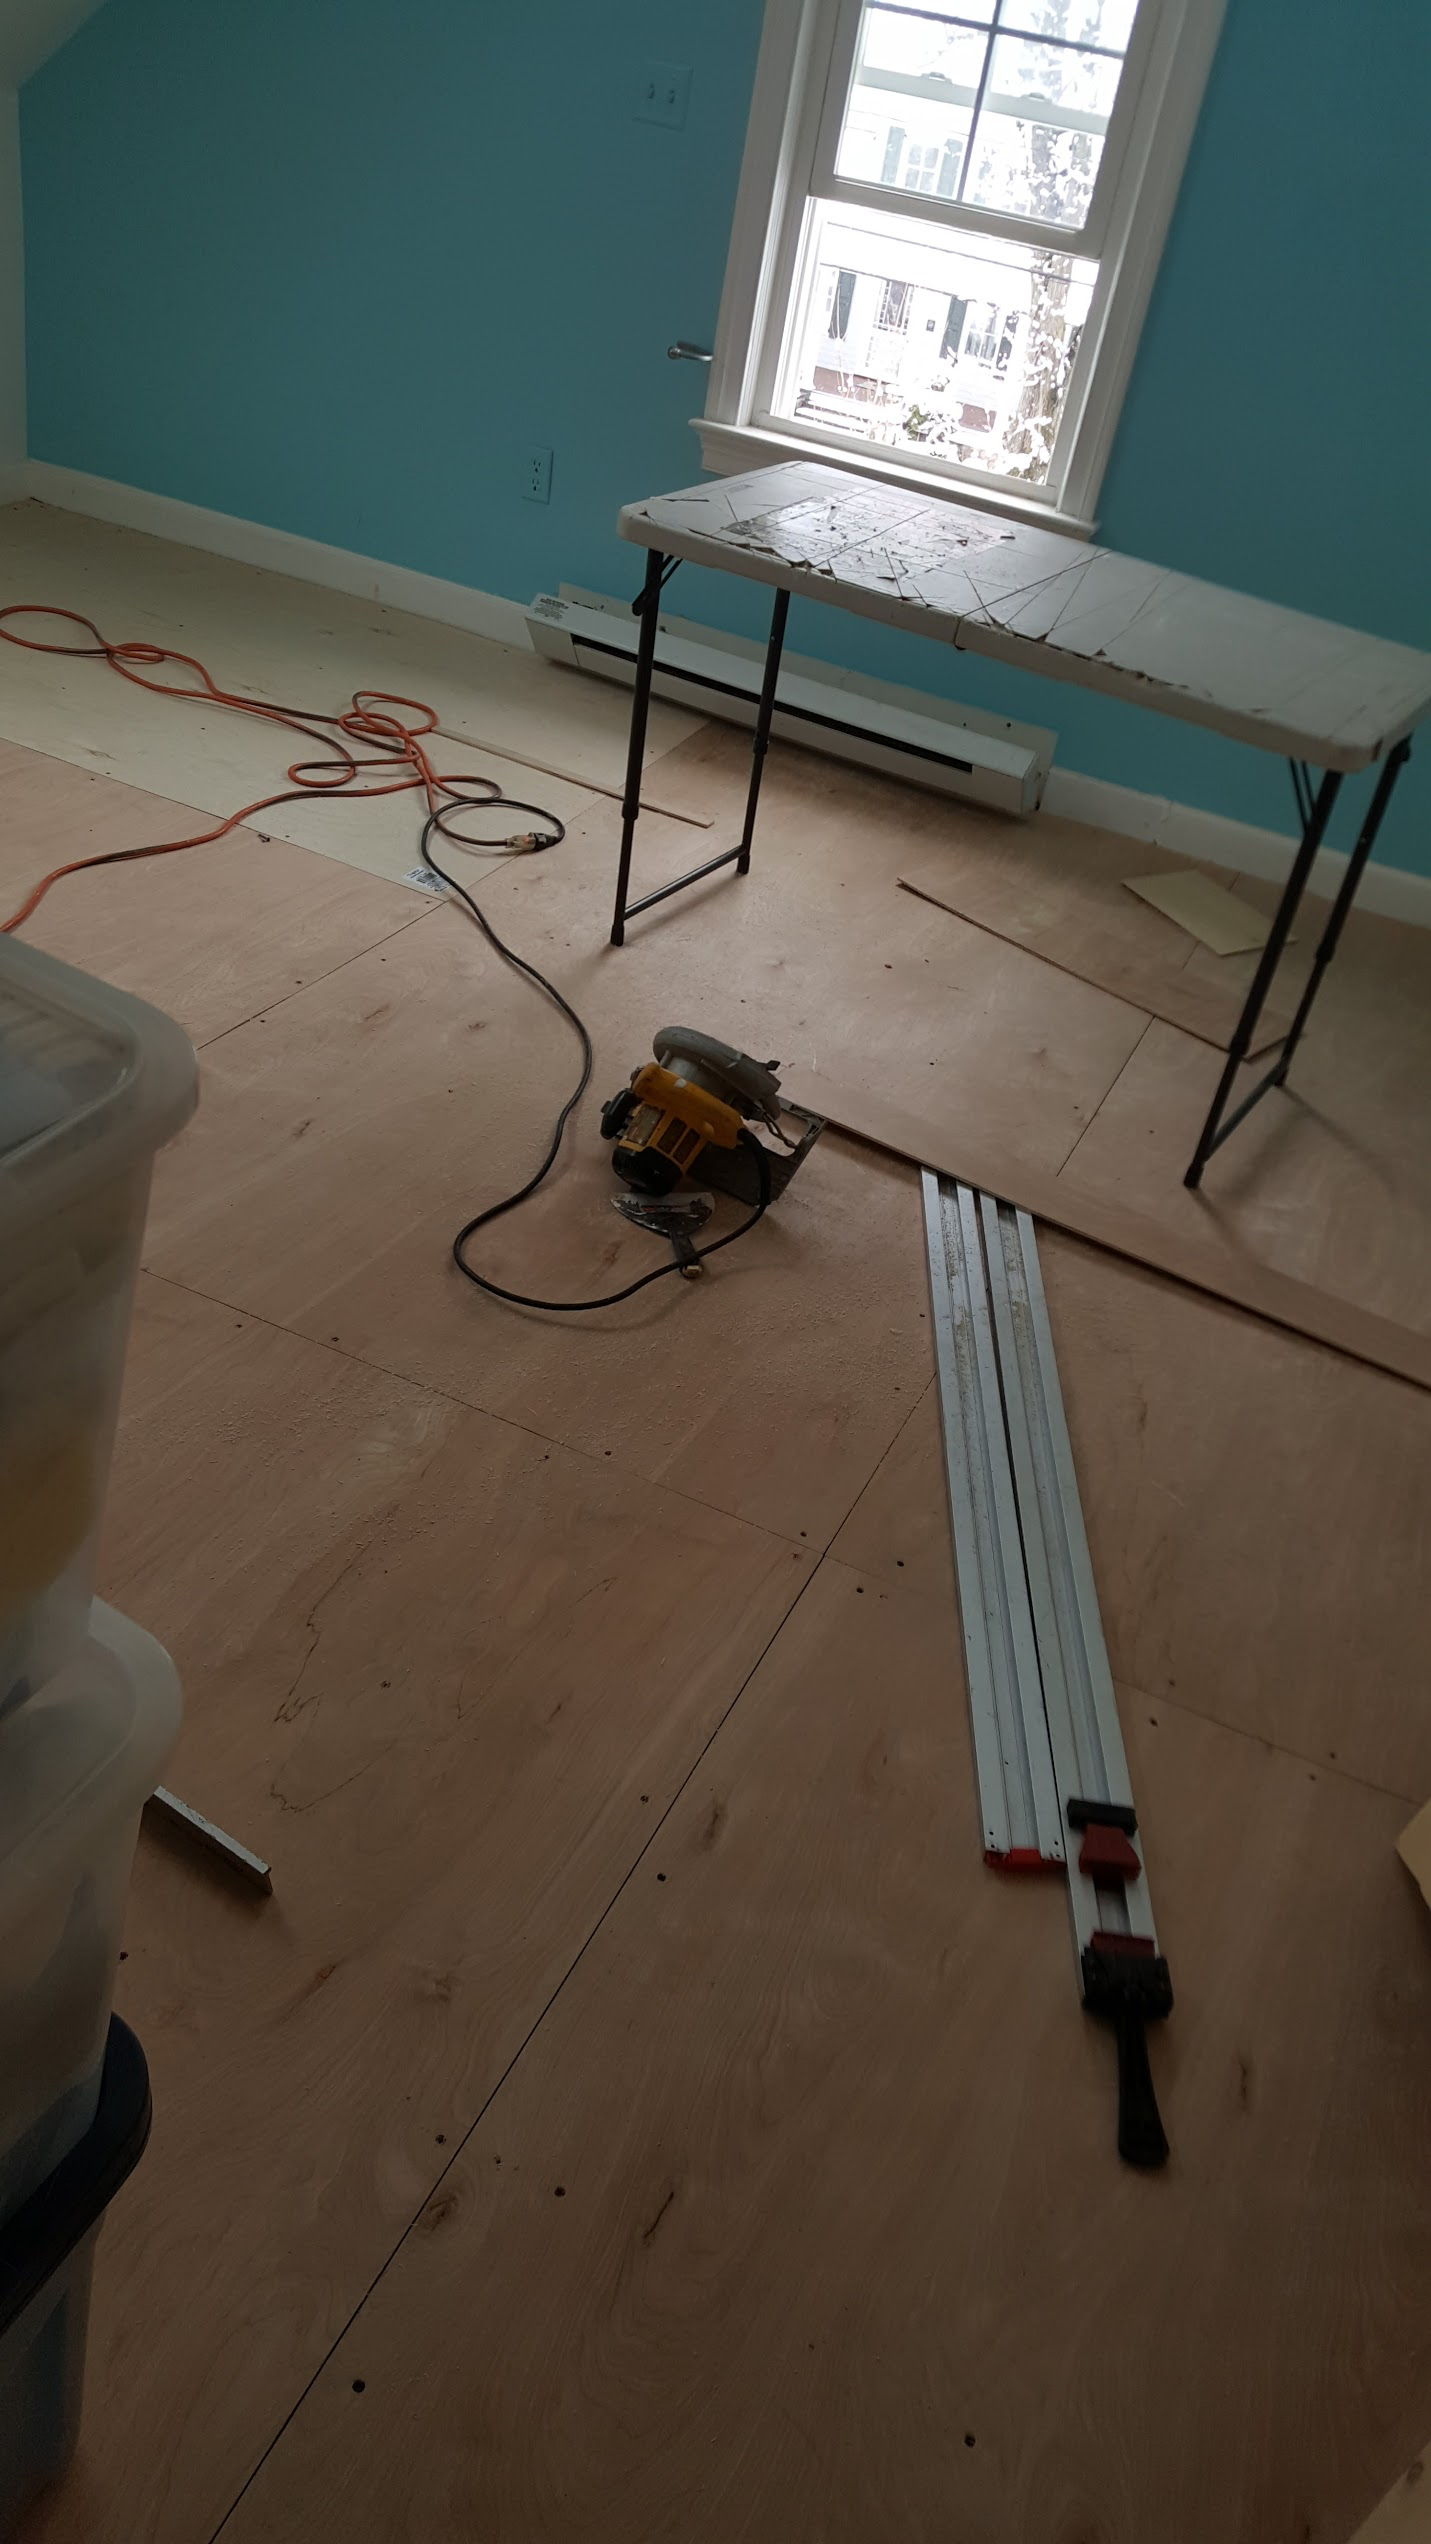 handyman service > PERGO FLOOR INSTALLATION. Search for: